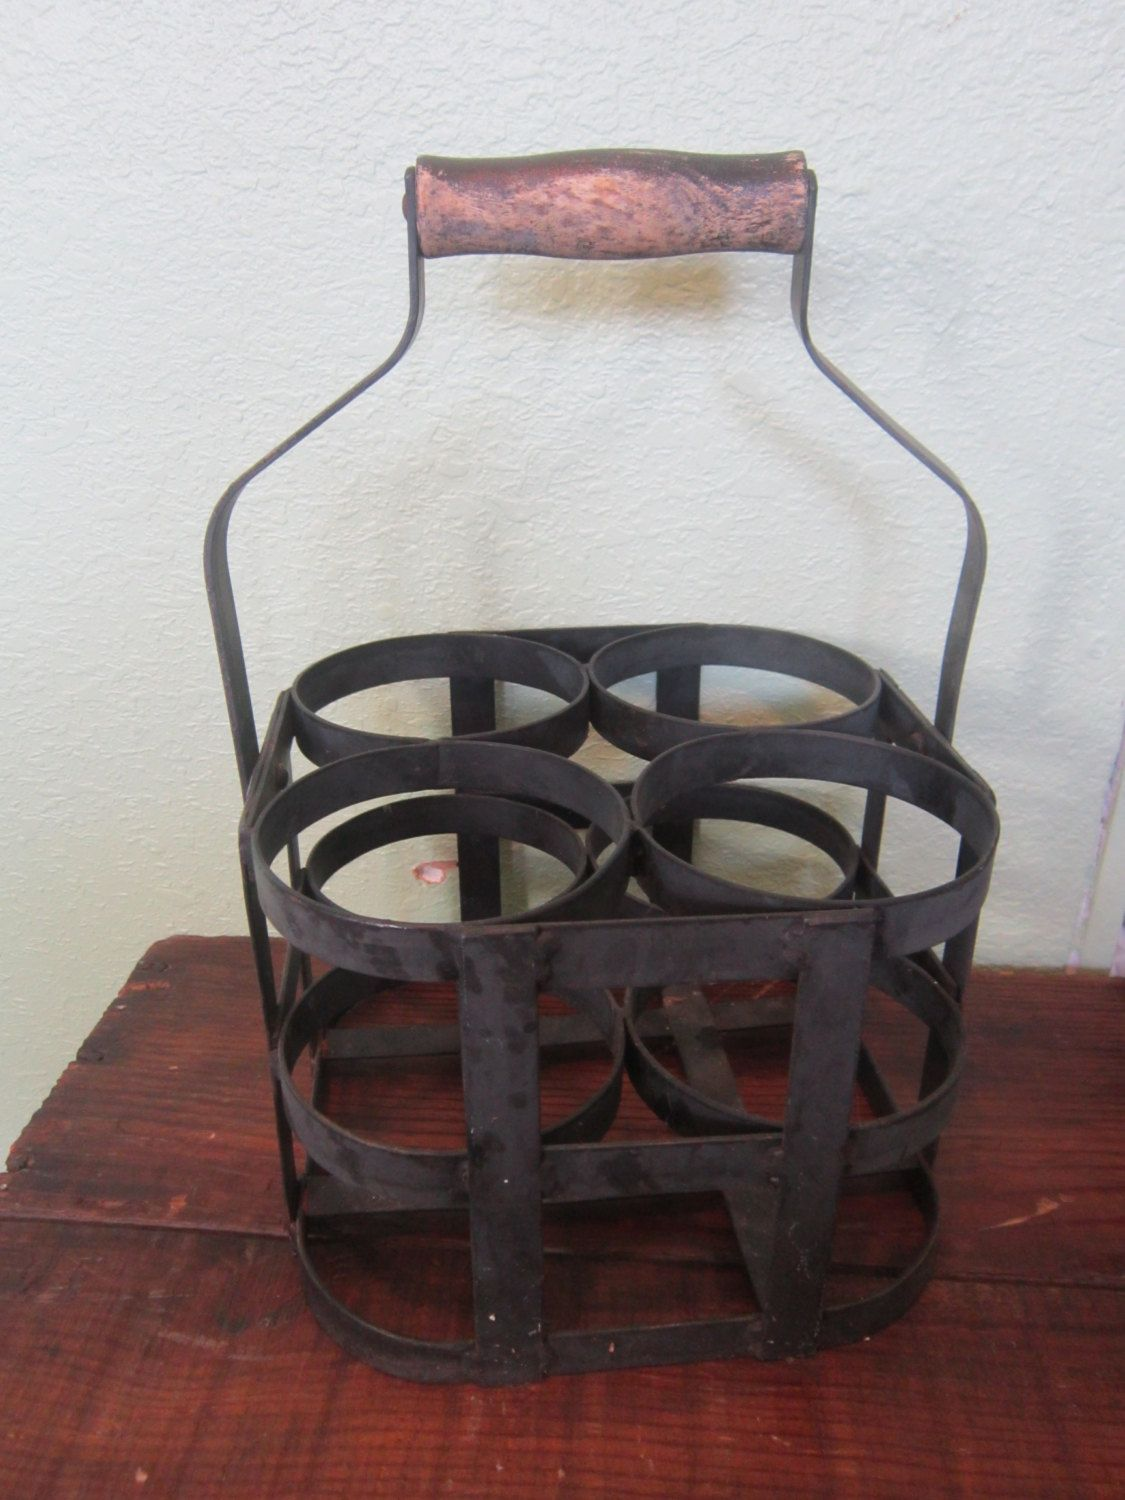 Wooden Crate With Handles Vintage Bottle Holder Crate Wooden Handle Wrought Iron Black